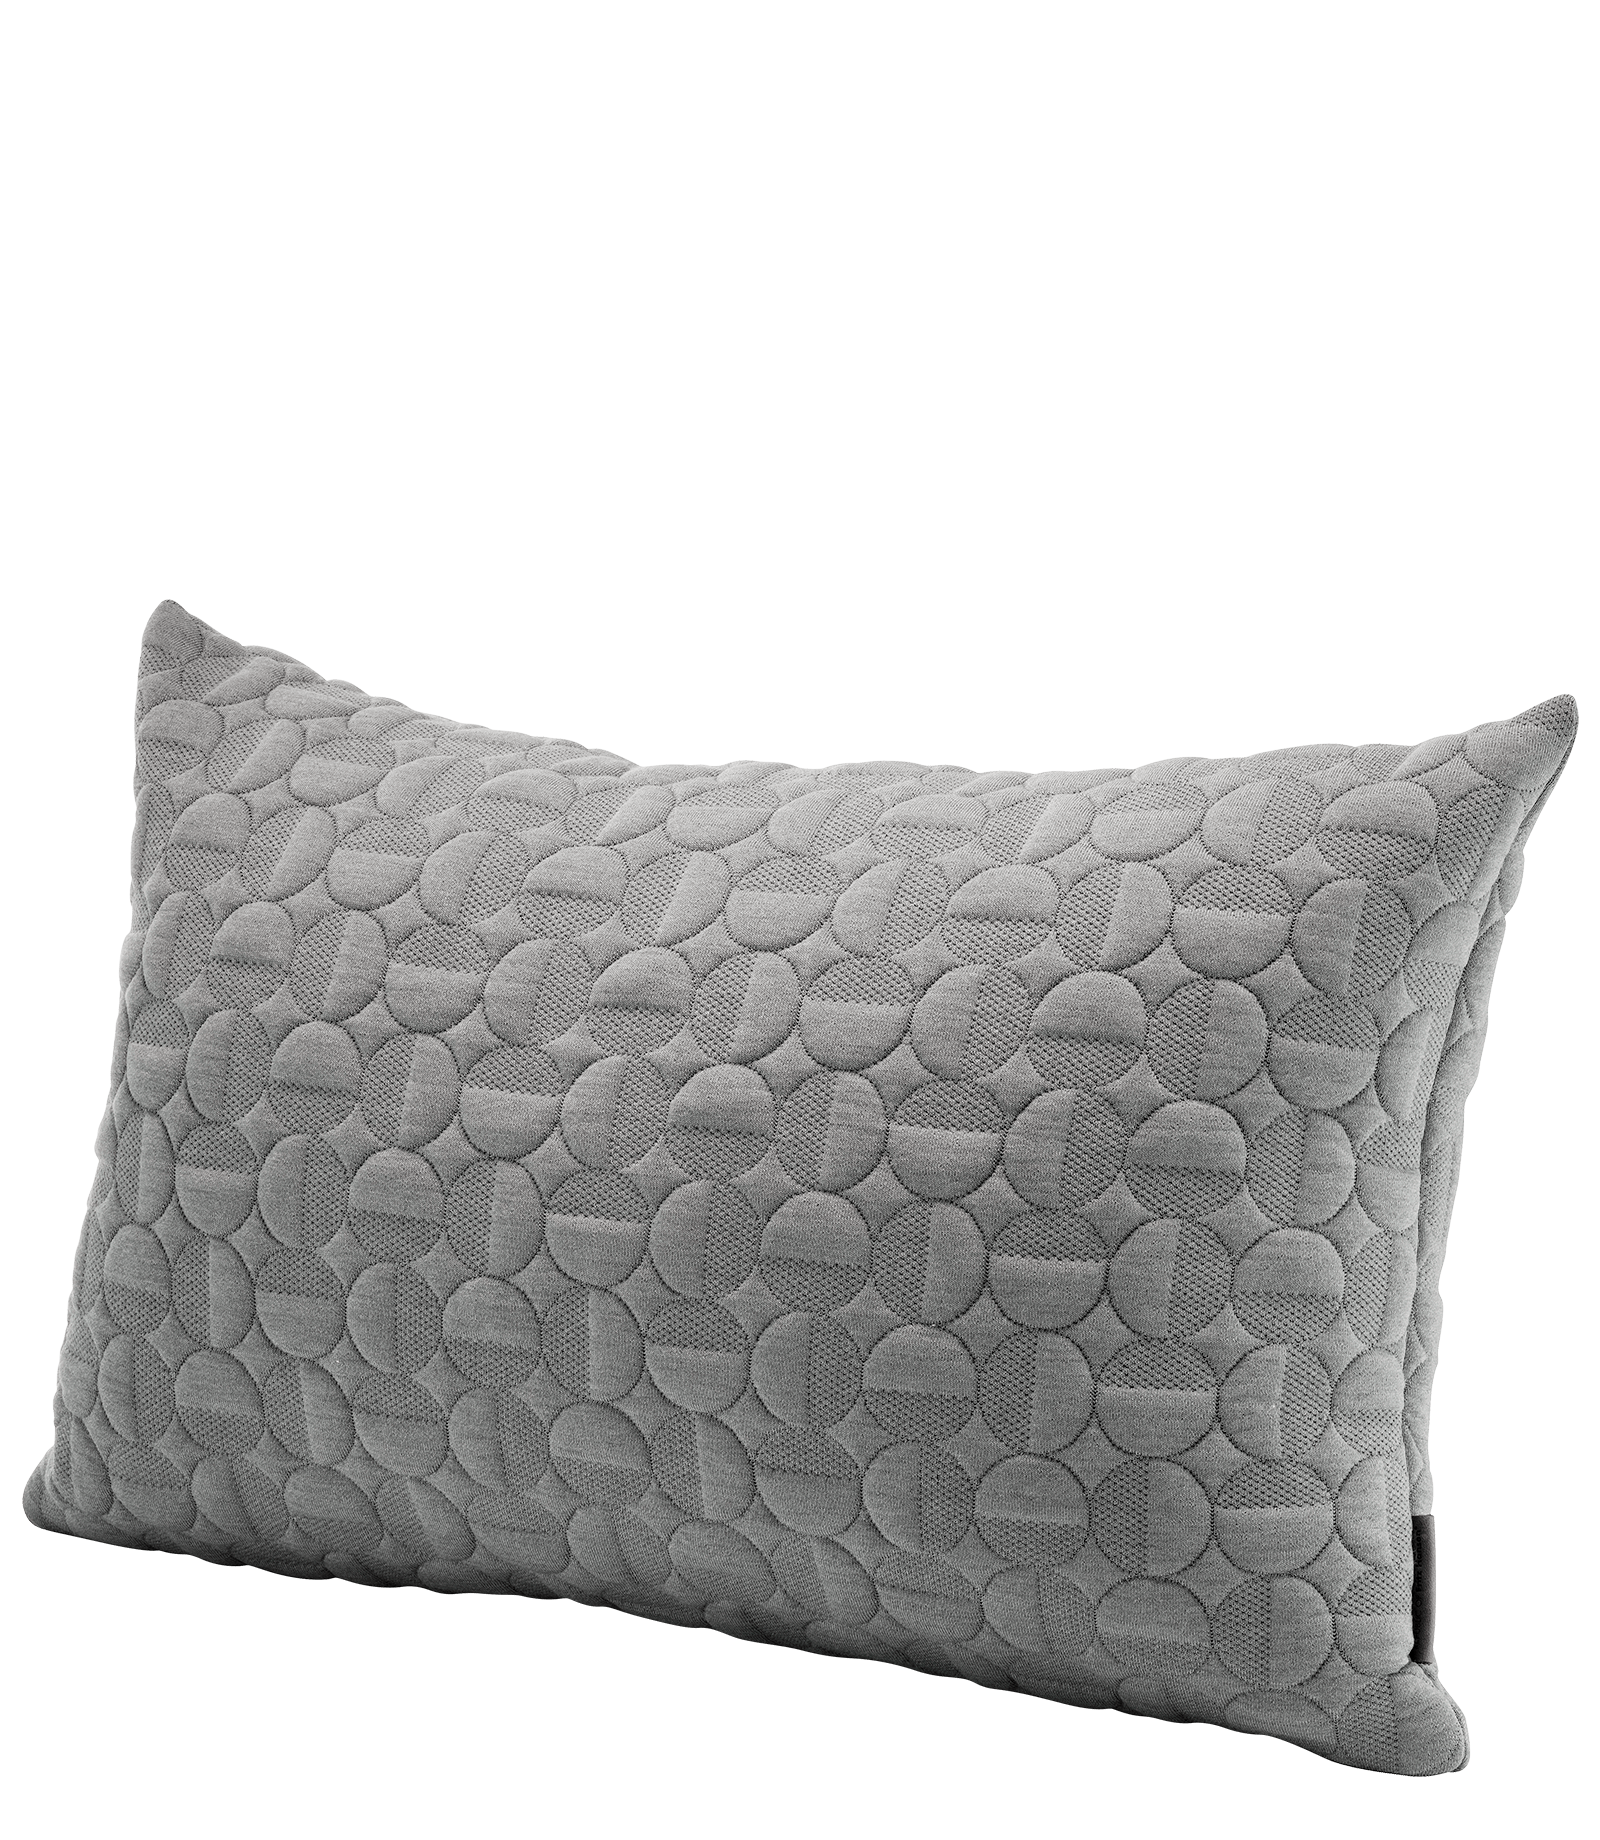 Cushion Image Free Transparent Image HQ PNG Image